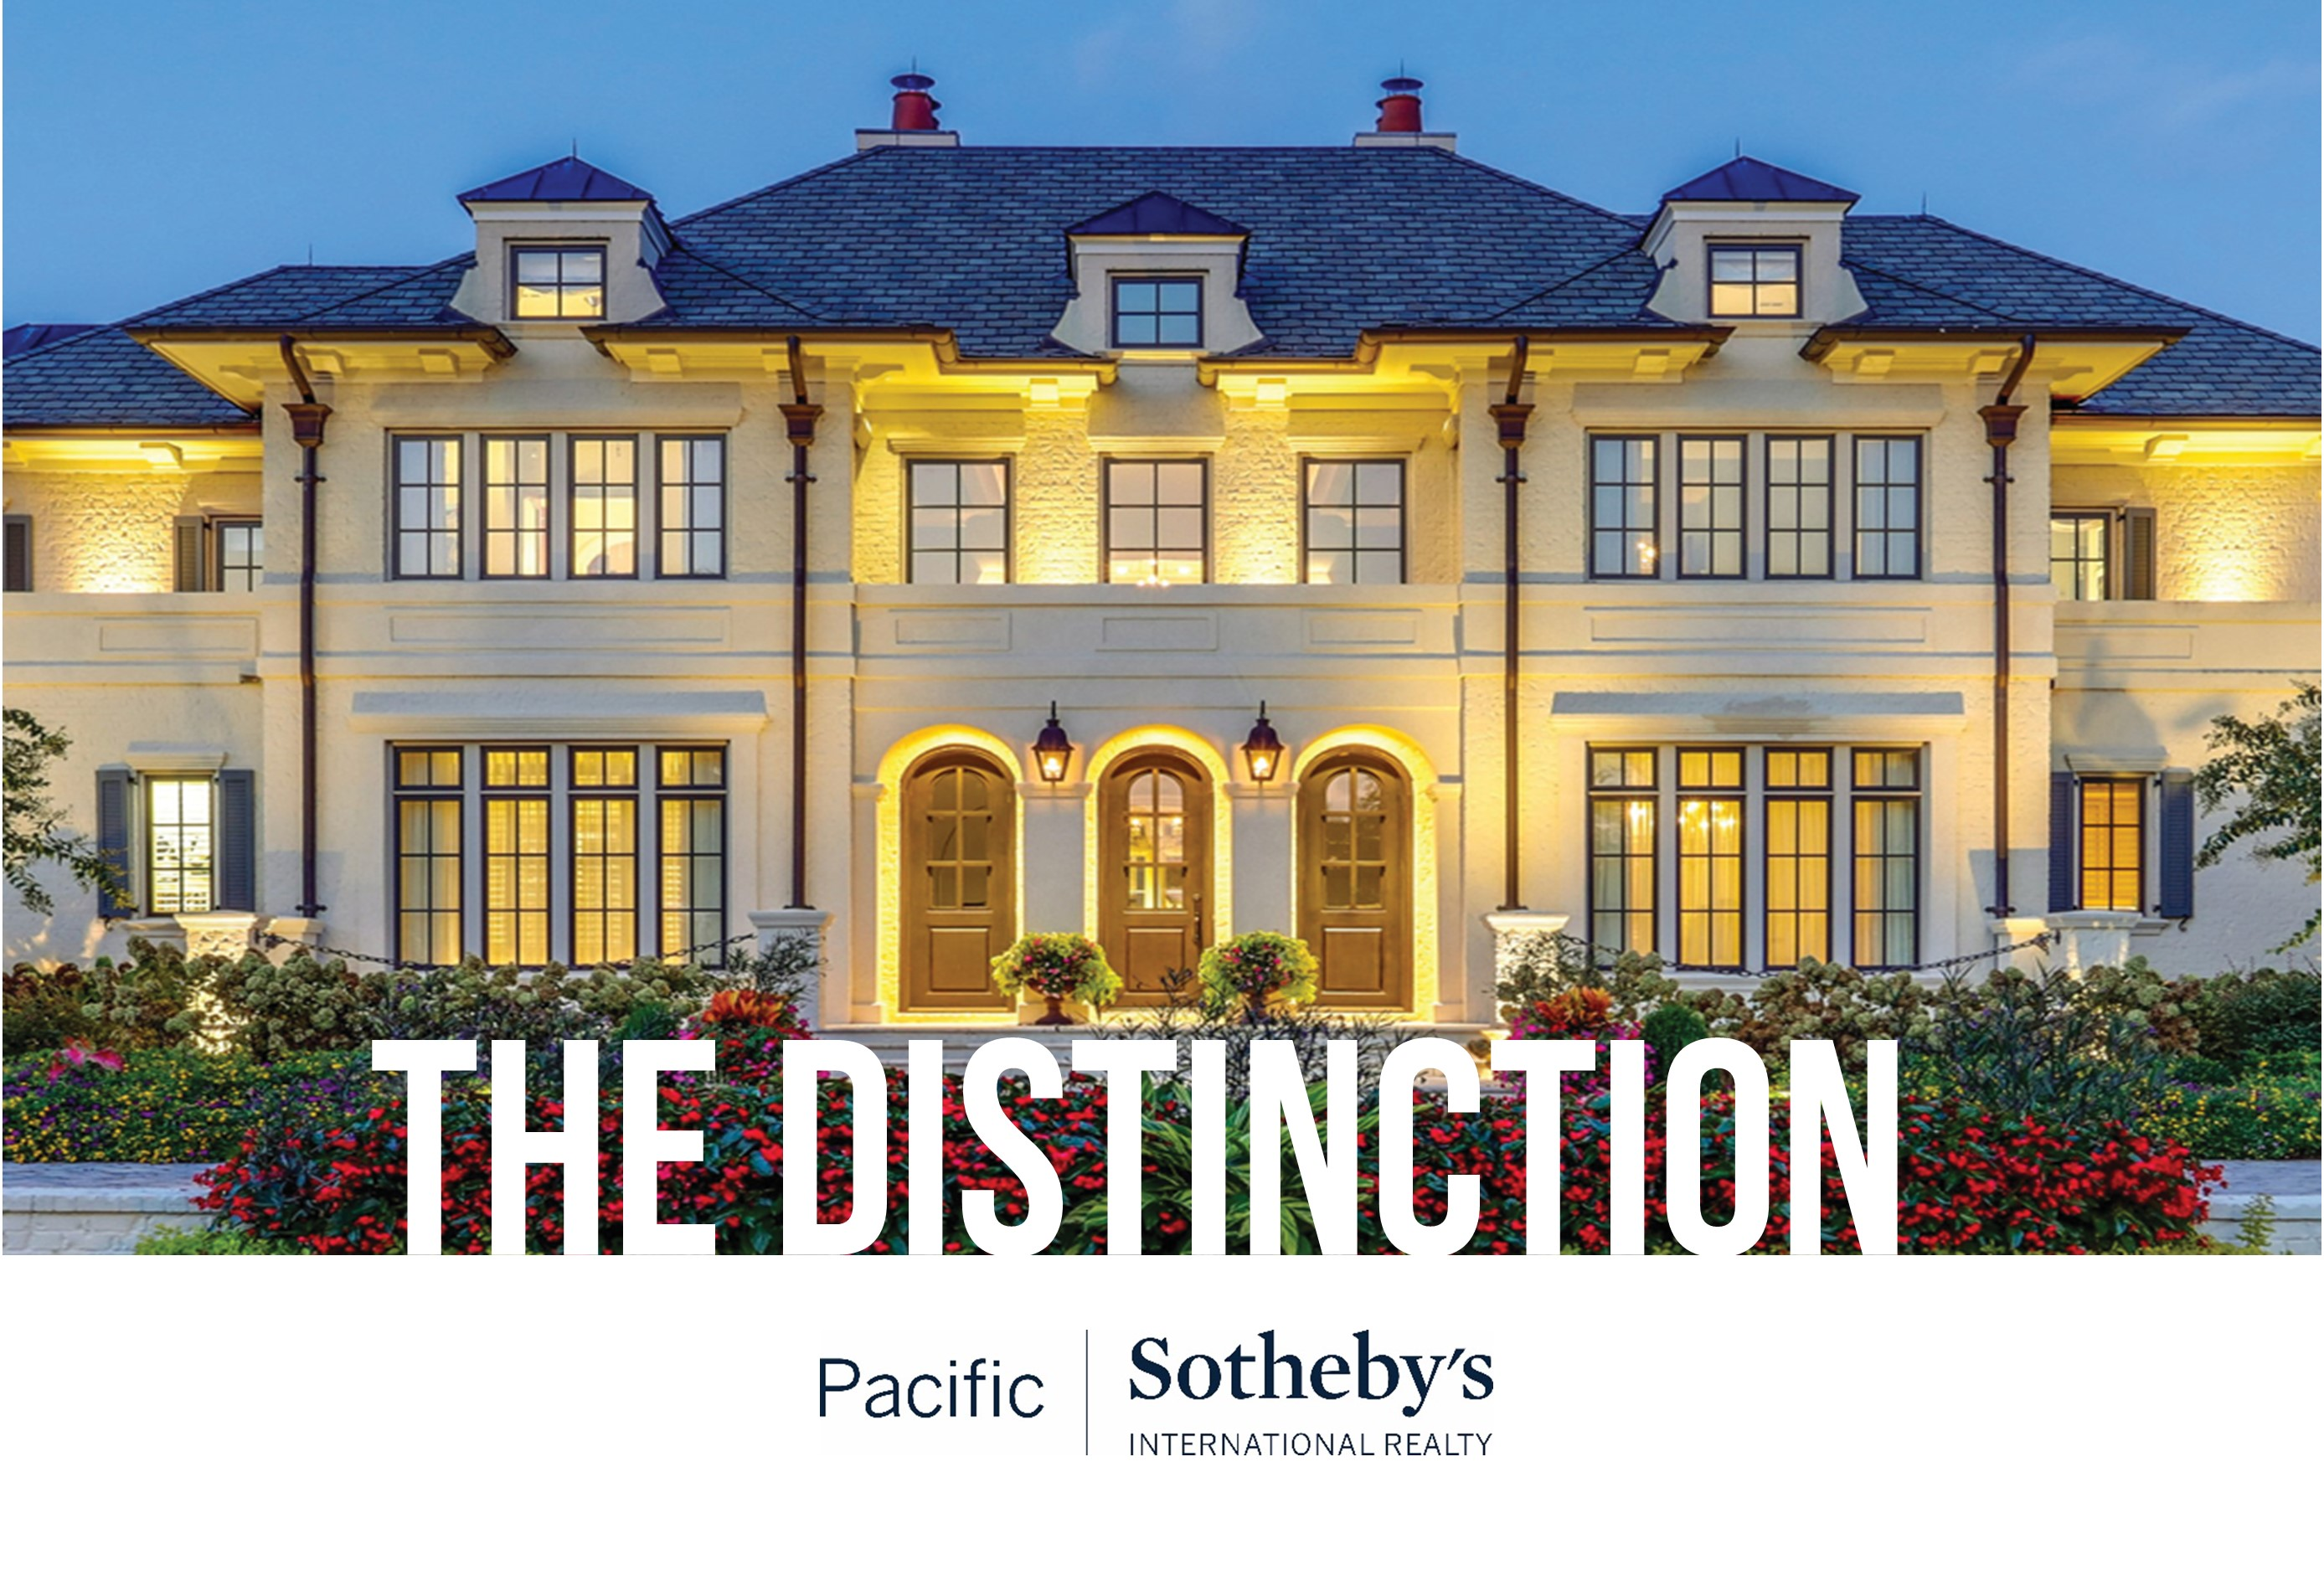 pacific sotheby's international realty ryan solberg